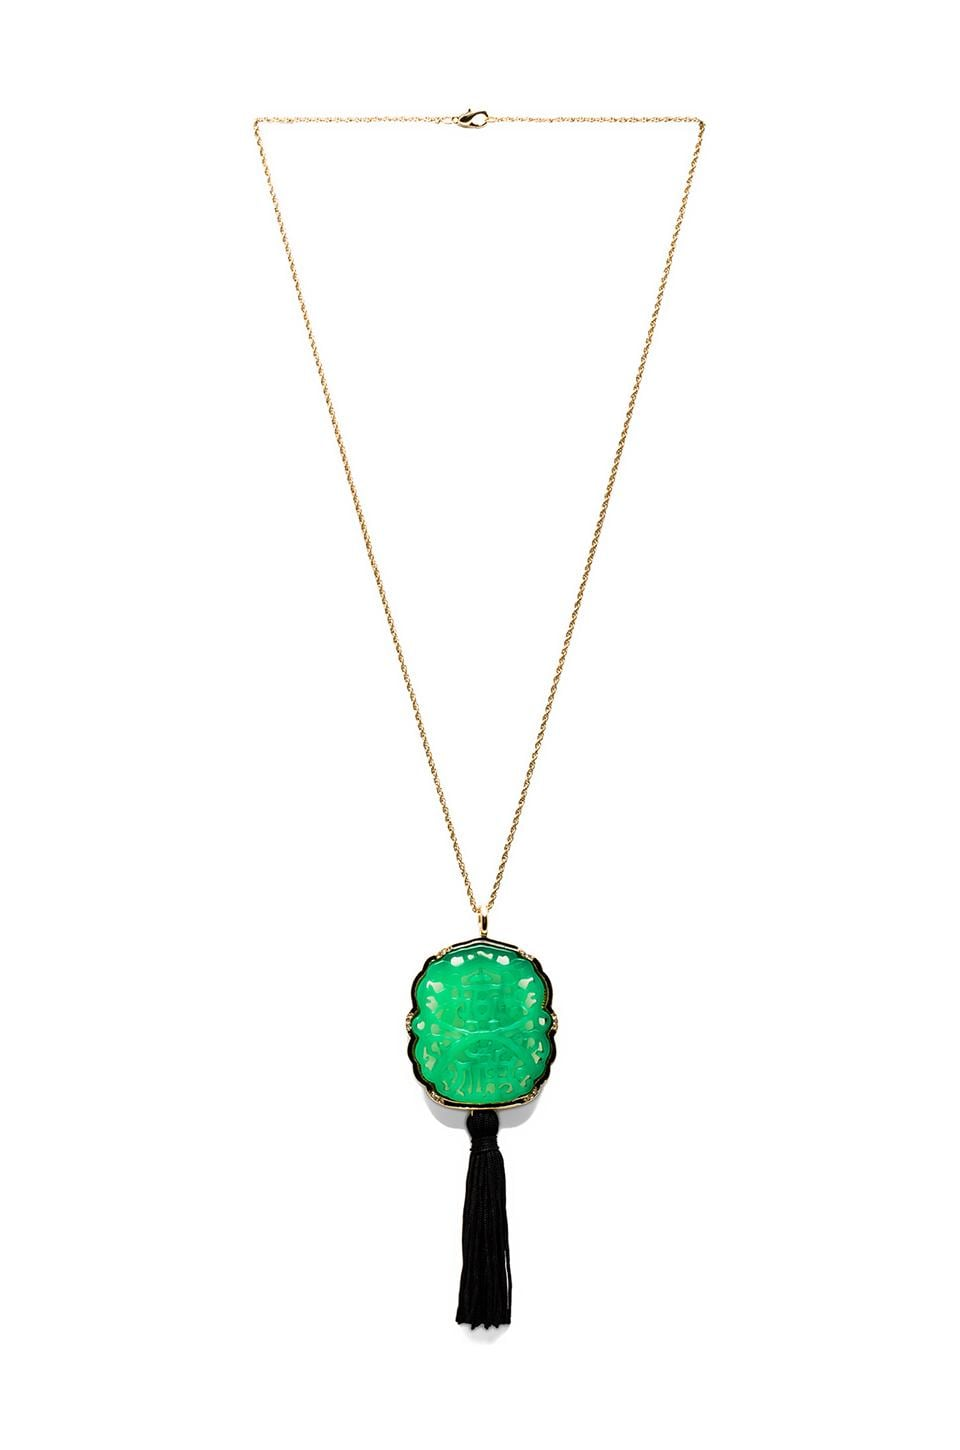 Kenneth Jay Lane Curved Jade Tassel Necklace with Gold Chain in Jade